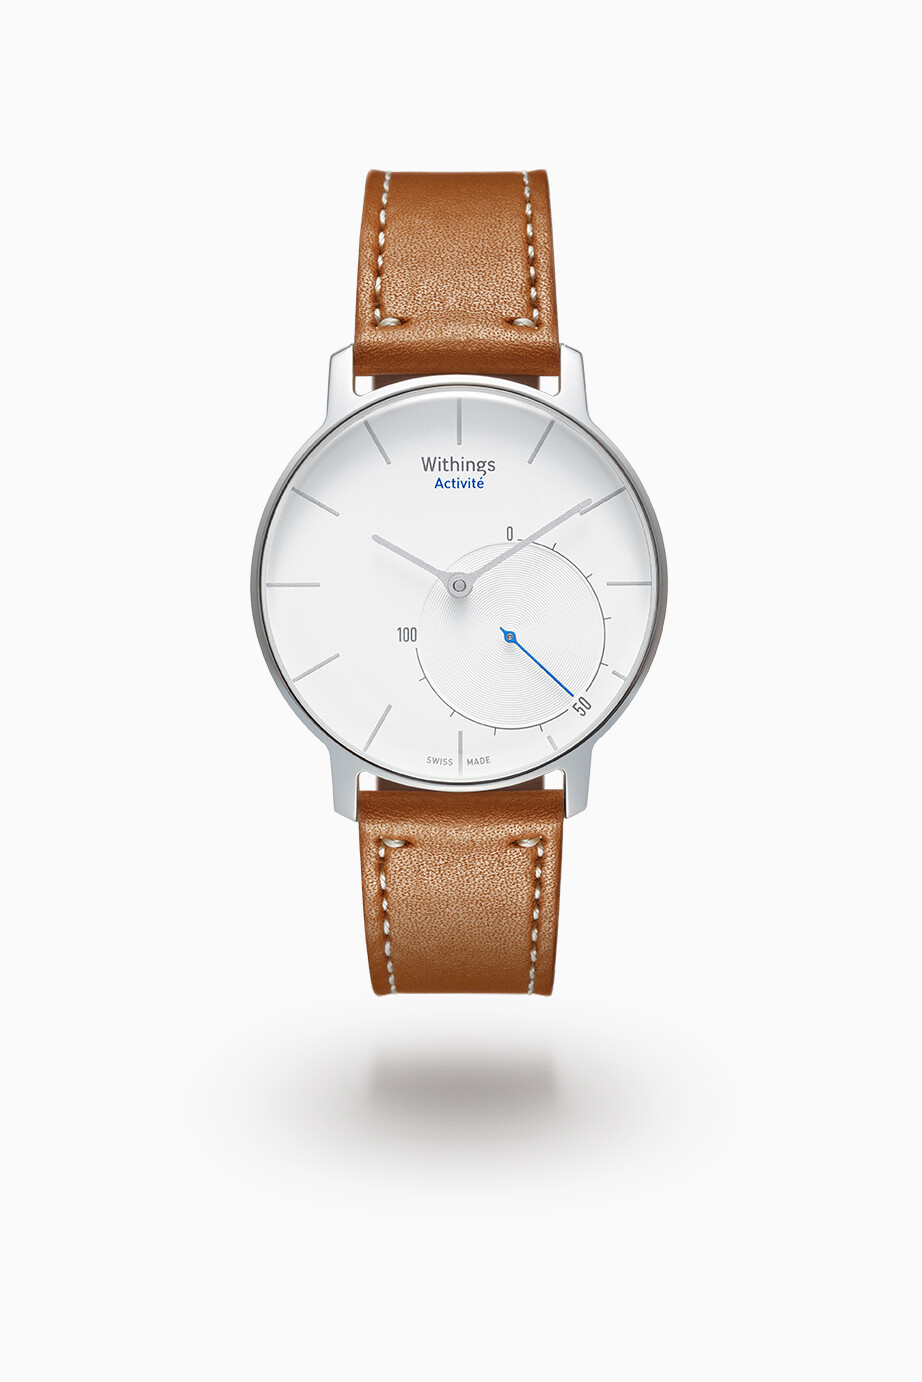 2.Withings_Activité_silver_front